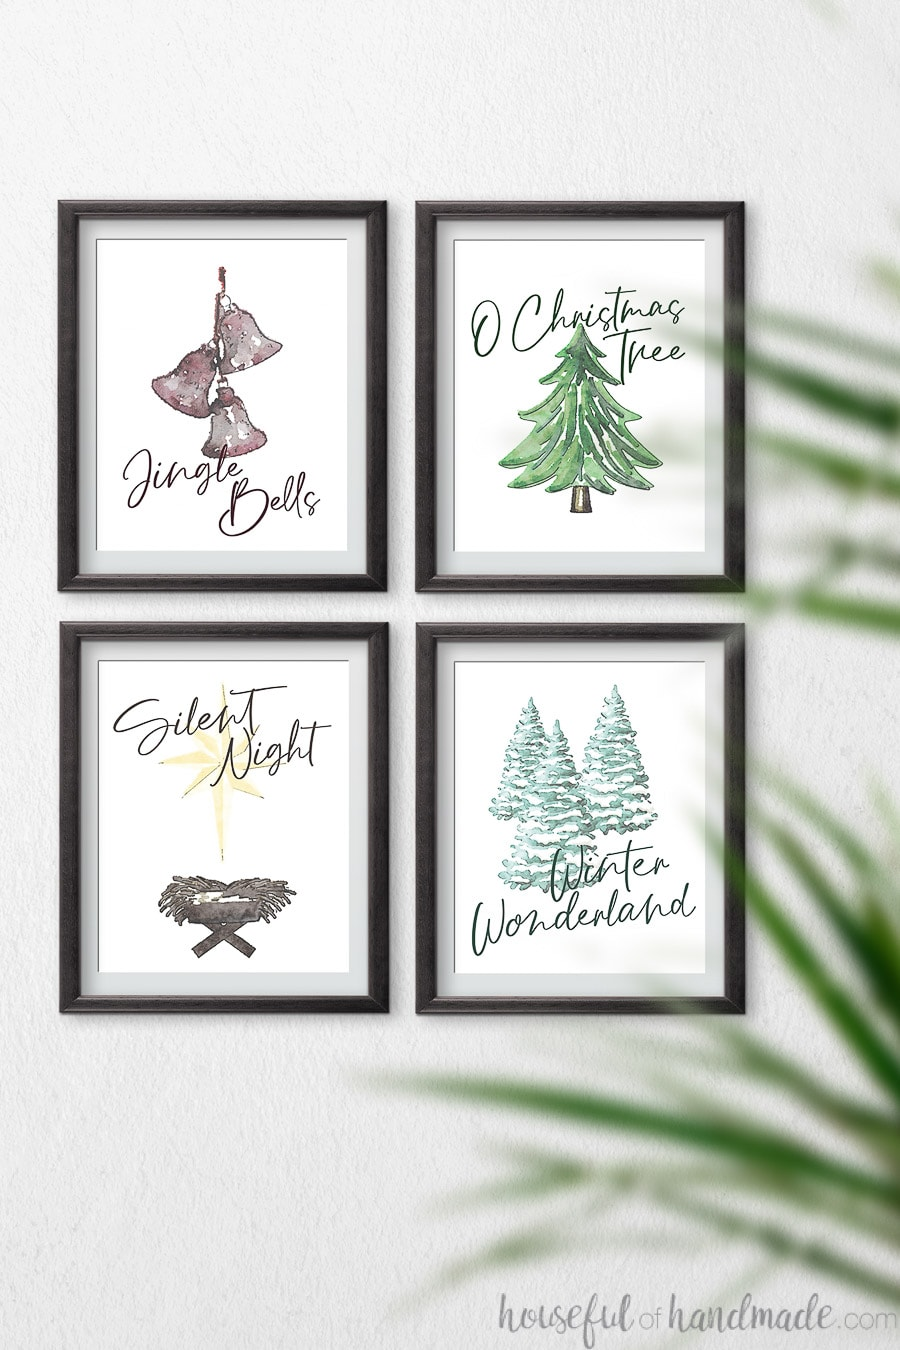 Four simple watercolor Christmas printables in black frames hanging on a wall.